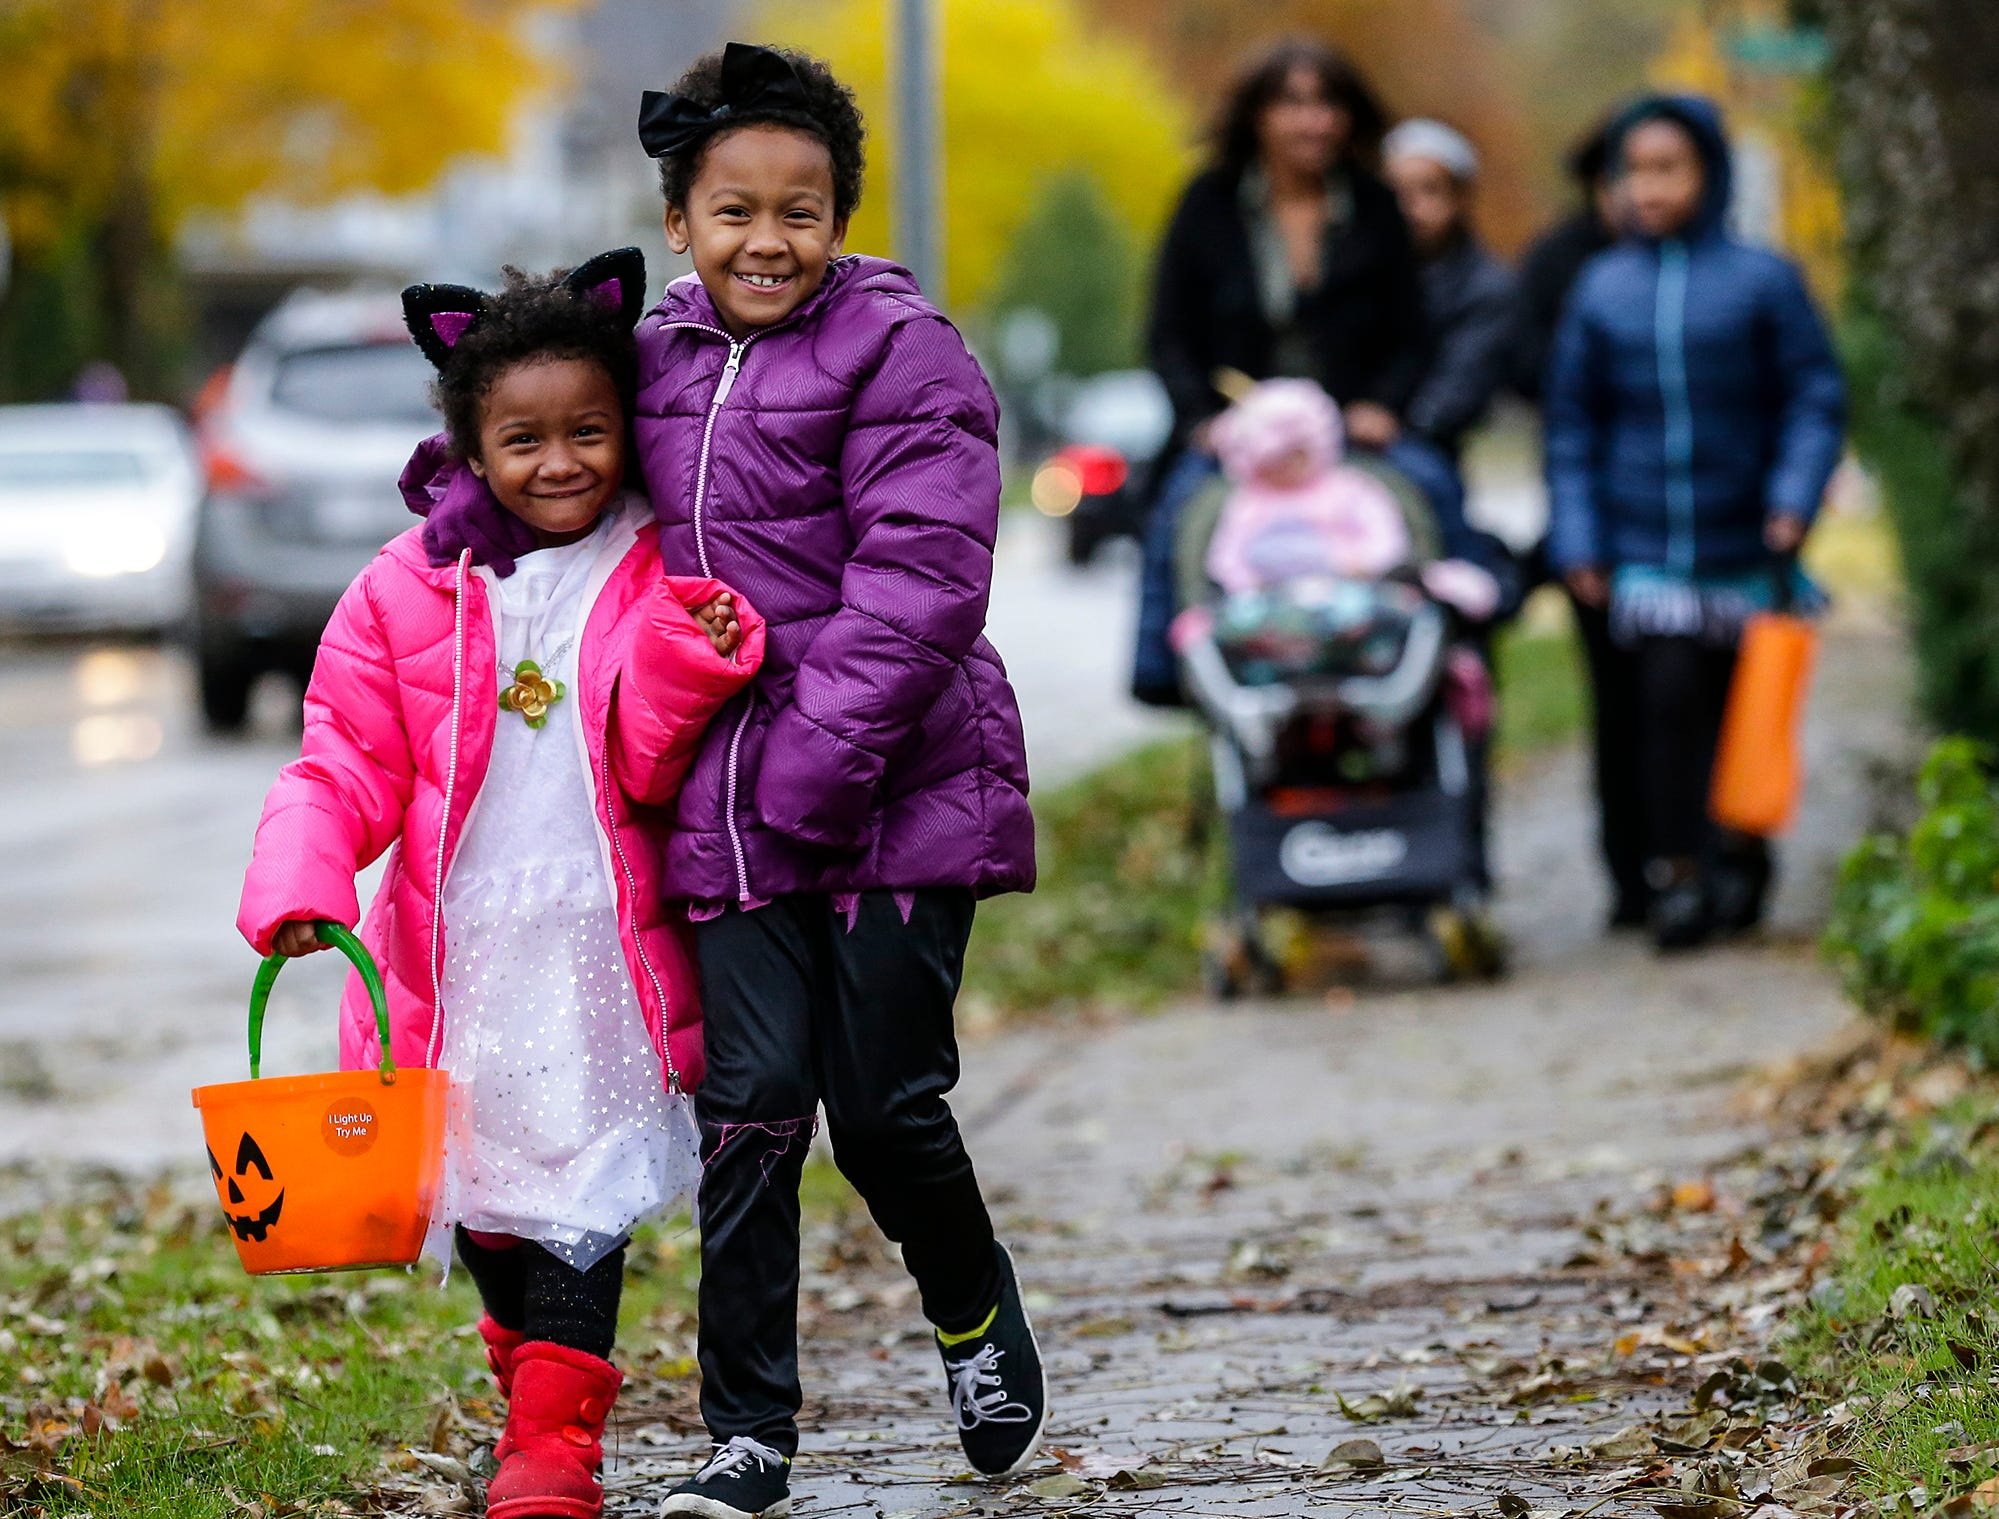 Sabrina and Anieona Jefferson of Fond du Lac were out trick or treating Sunday, October 28, 2018 in Fond du Lac, Wisconsin. Doug Raflik/USA TODAY NETWORK-Wisconsin